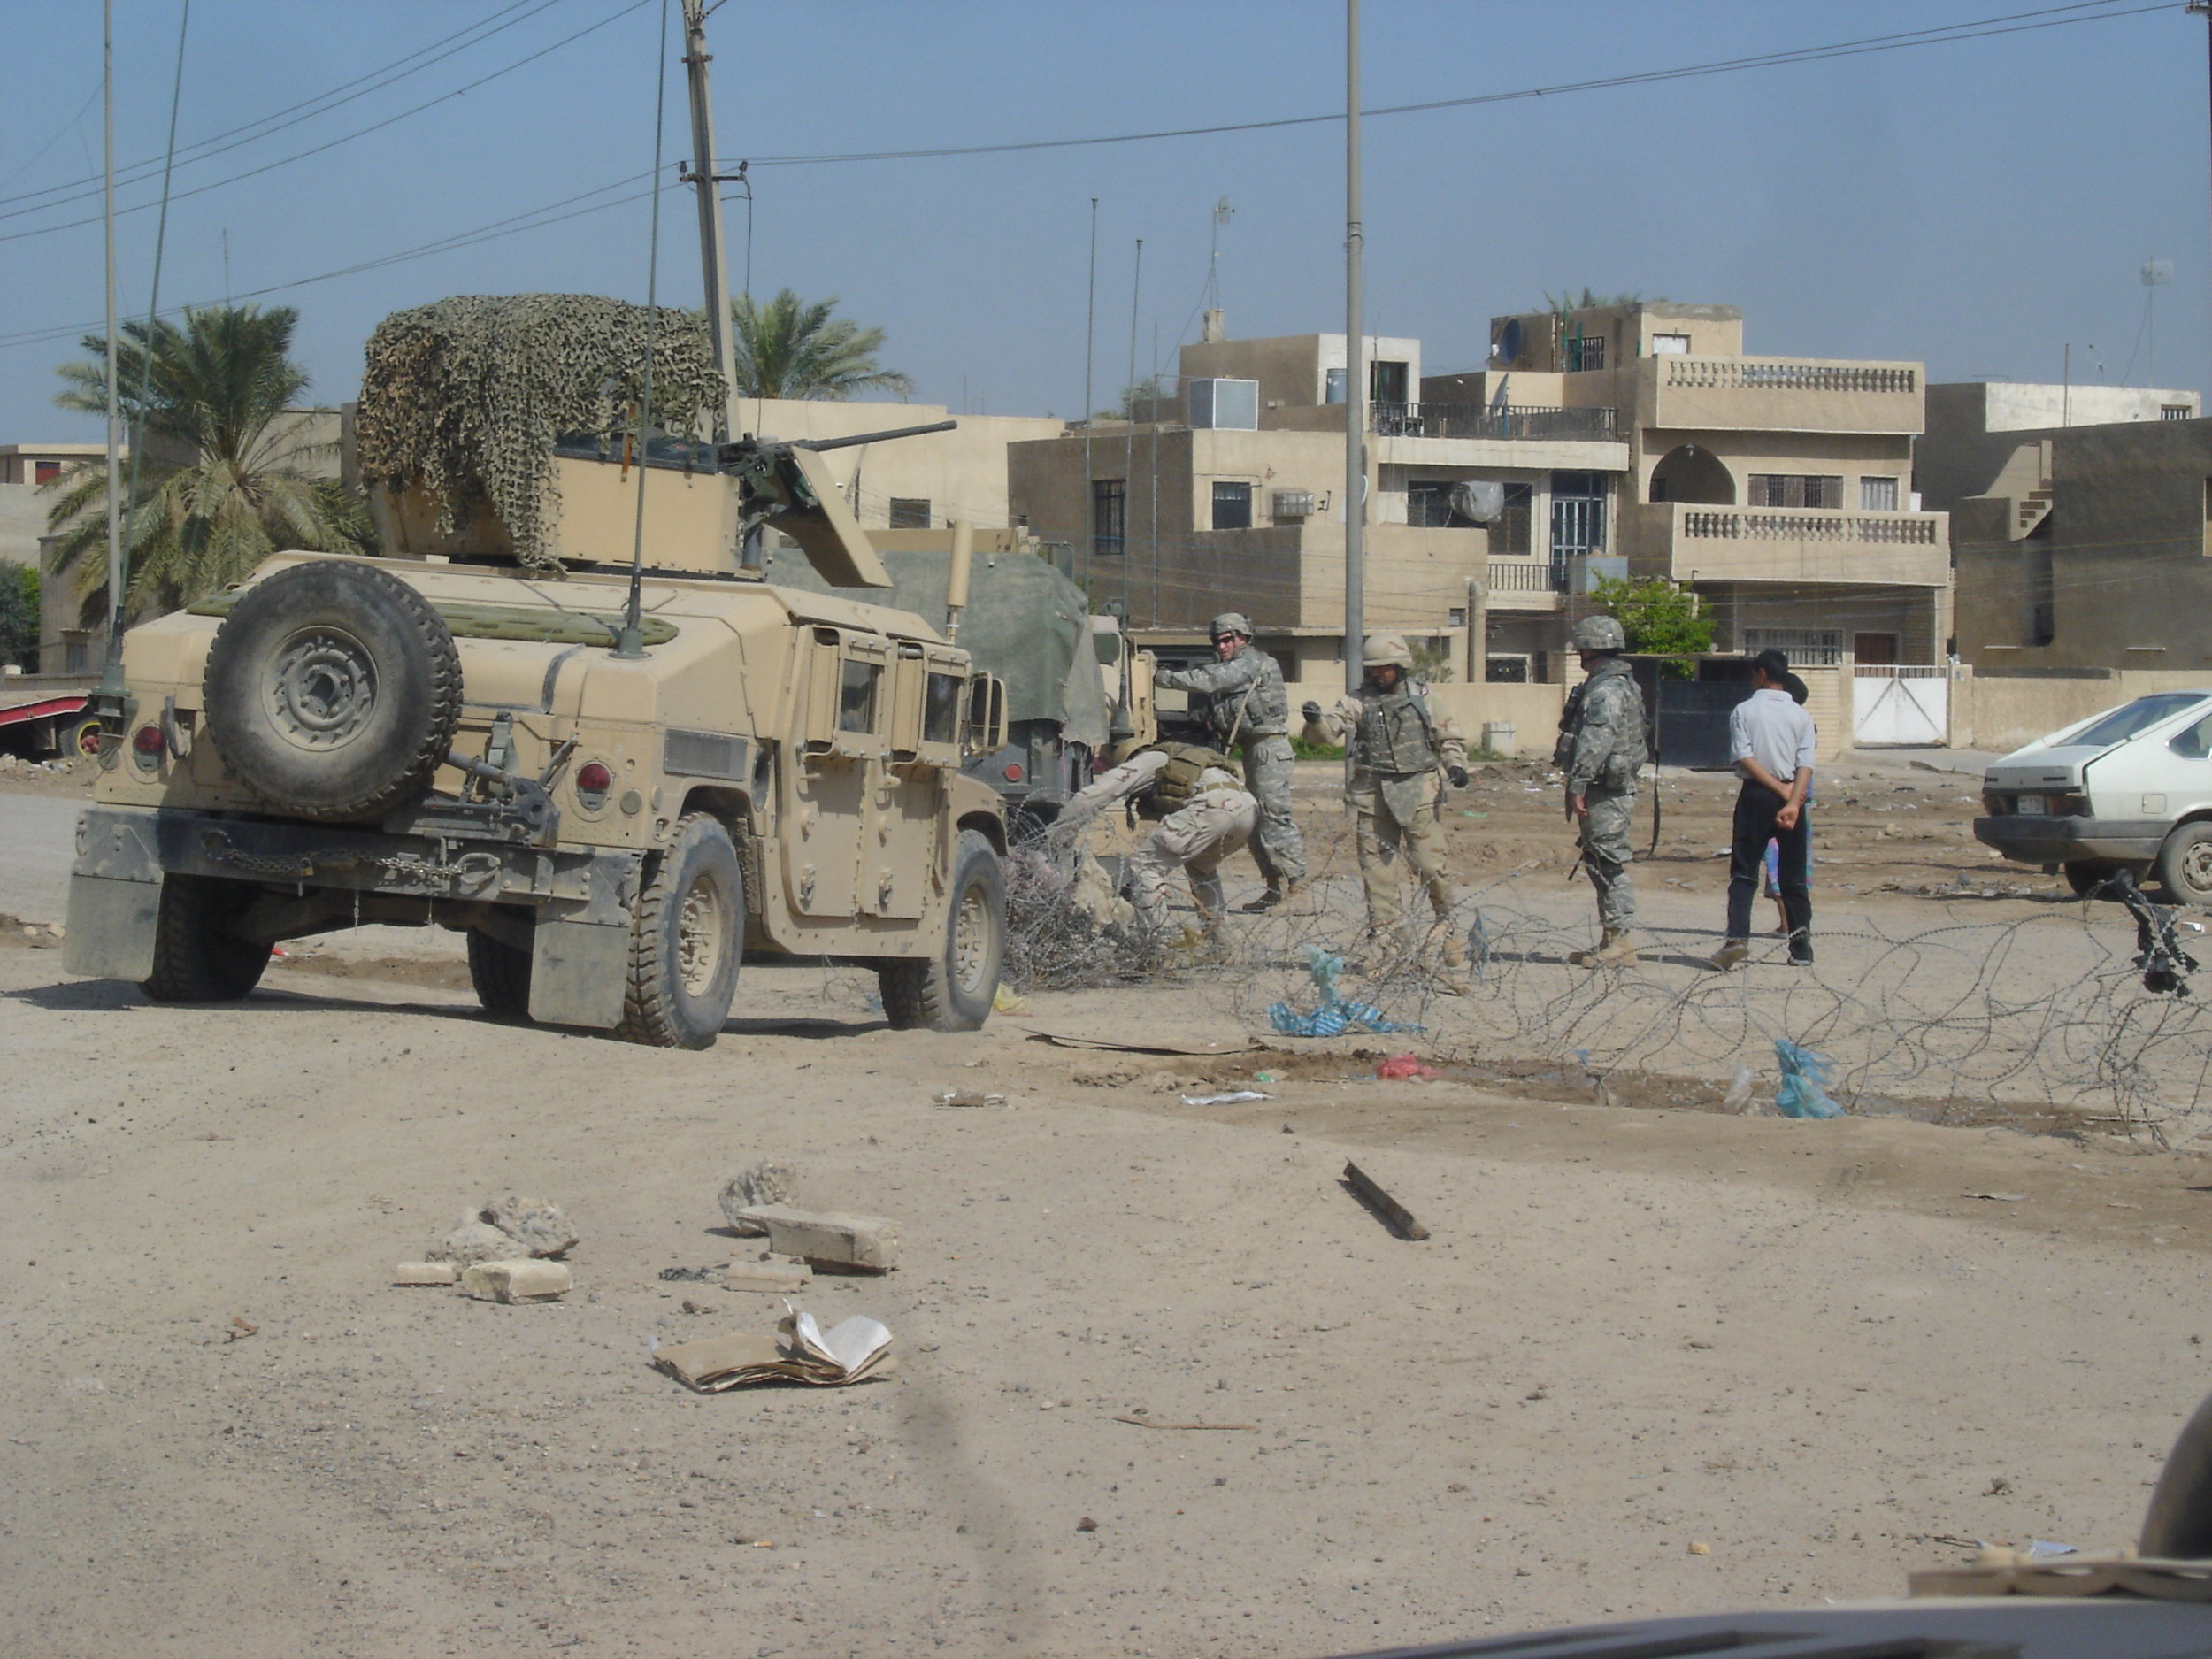 Iraq war stories:   Humvee getting stuck in constantino razor wire on our way to the explosives pickup.